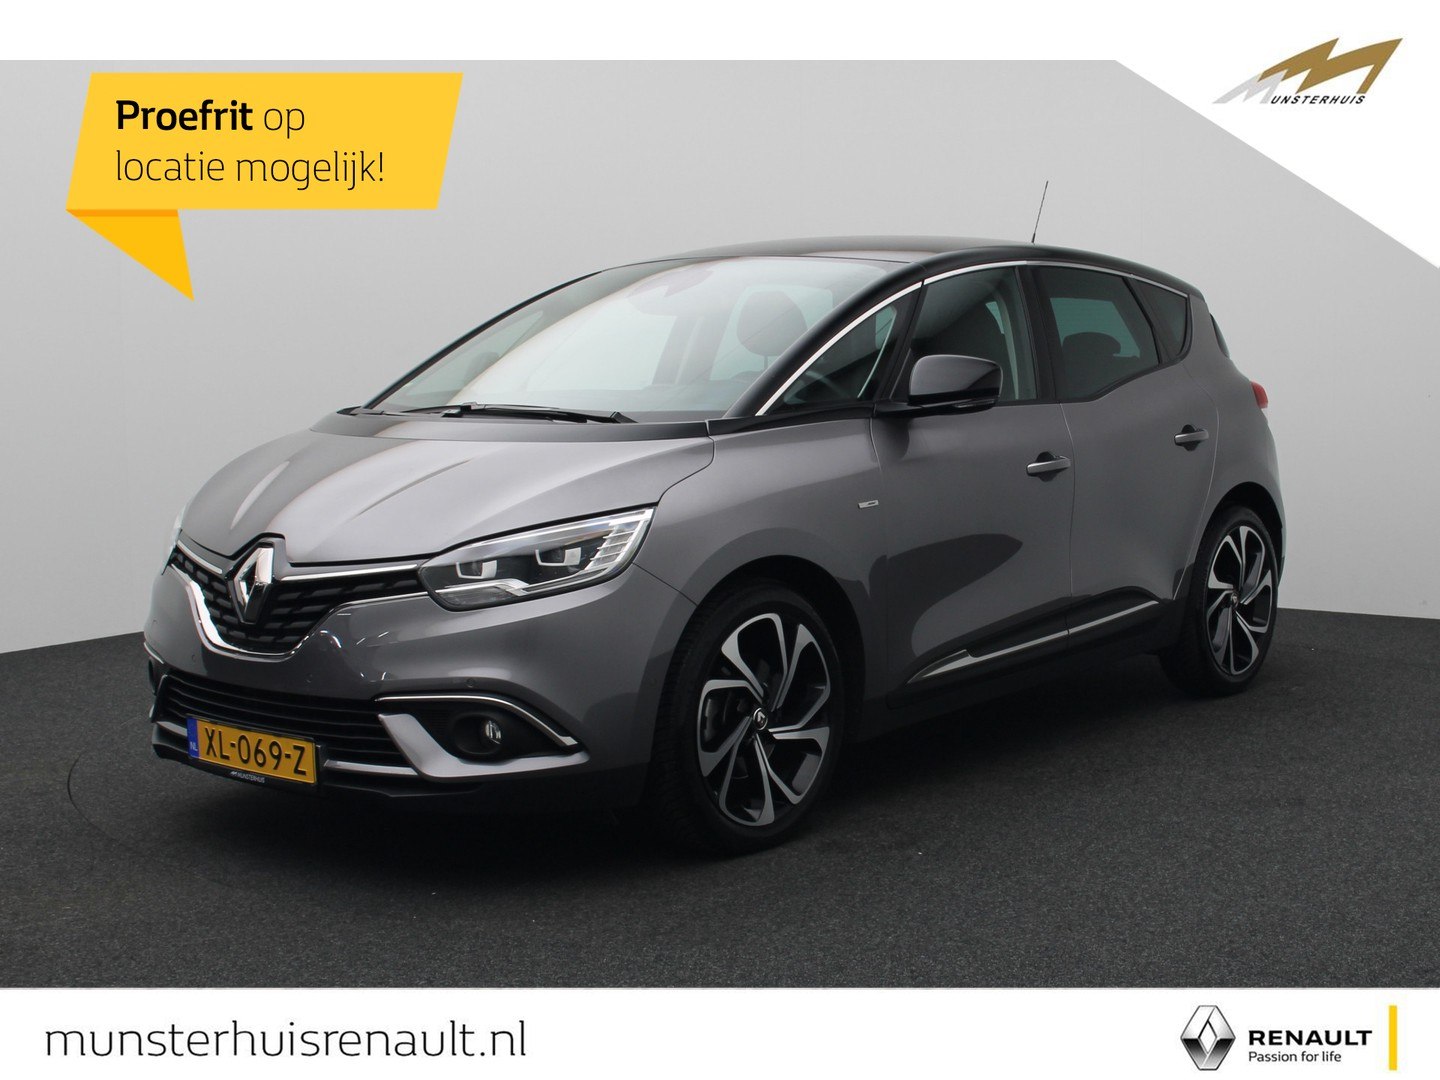 Renault Scénic Tce 140 edc bose - automaat -